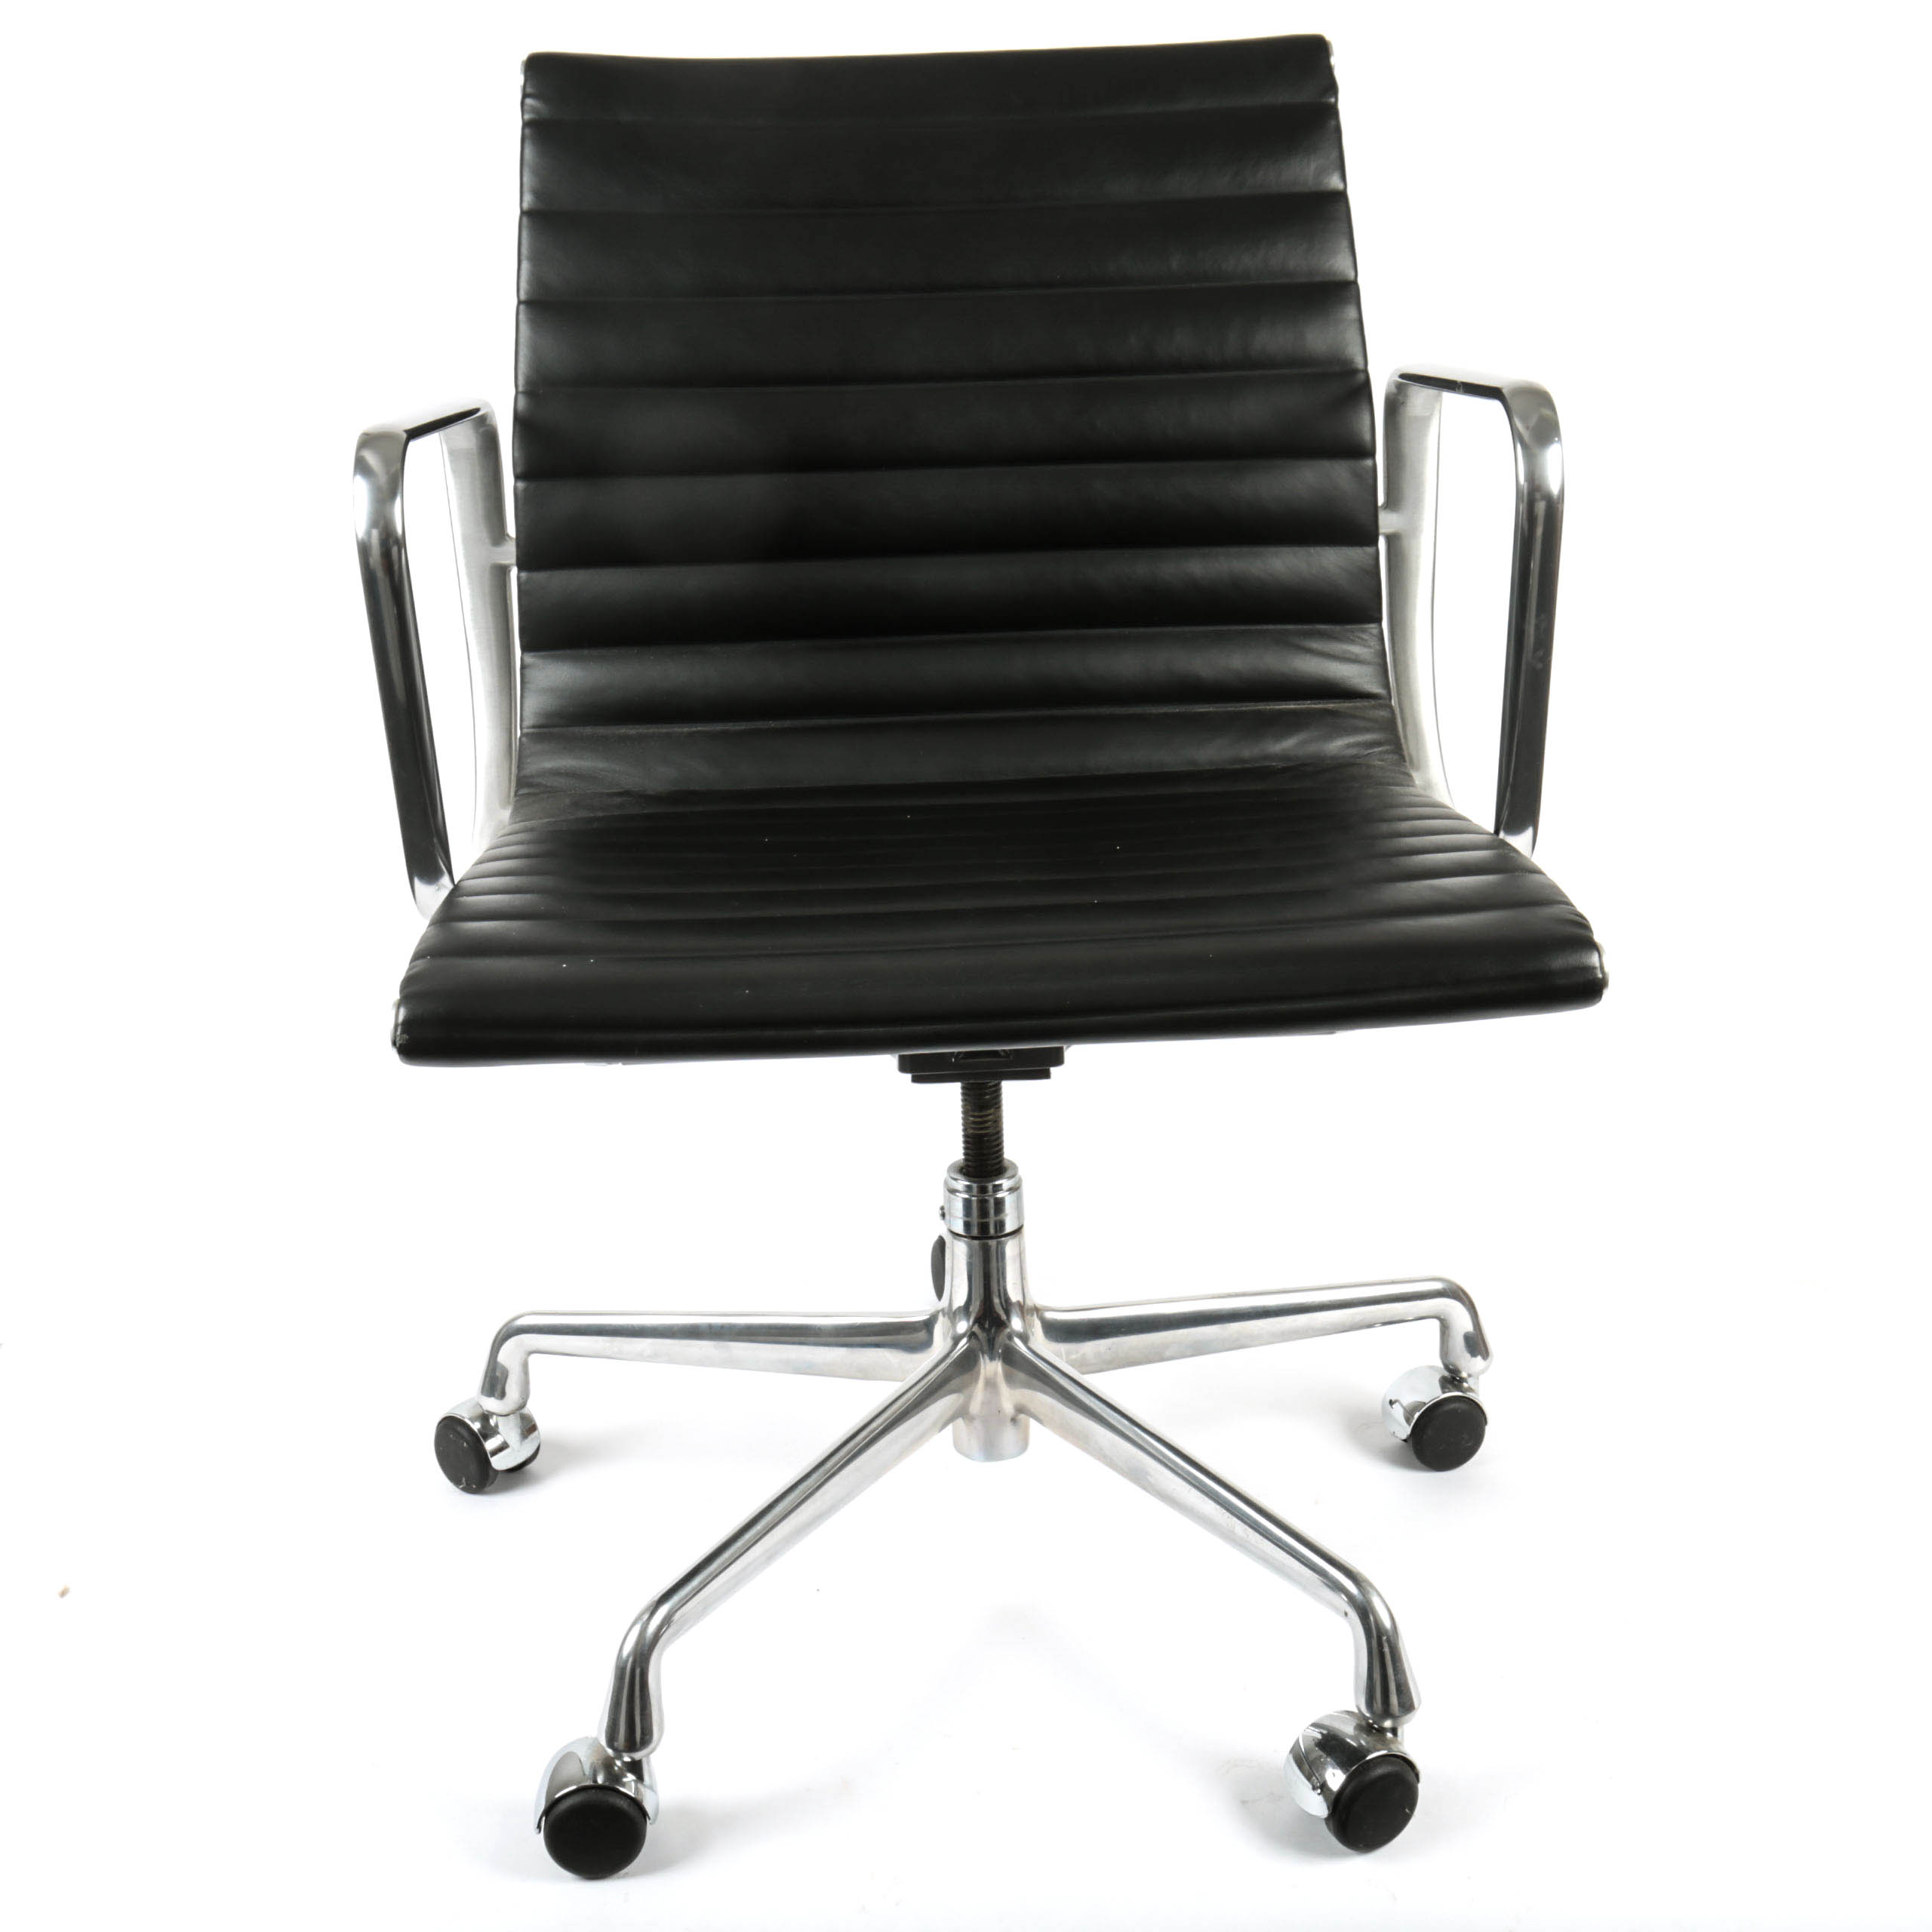 Vintage Office Furniture Auction Used In Used Office